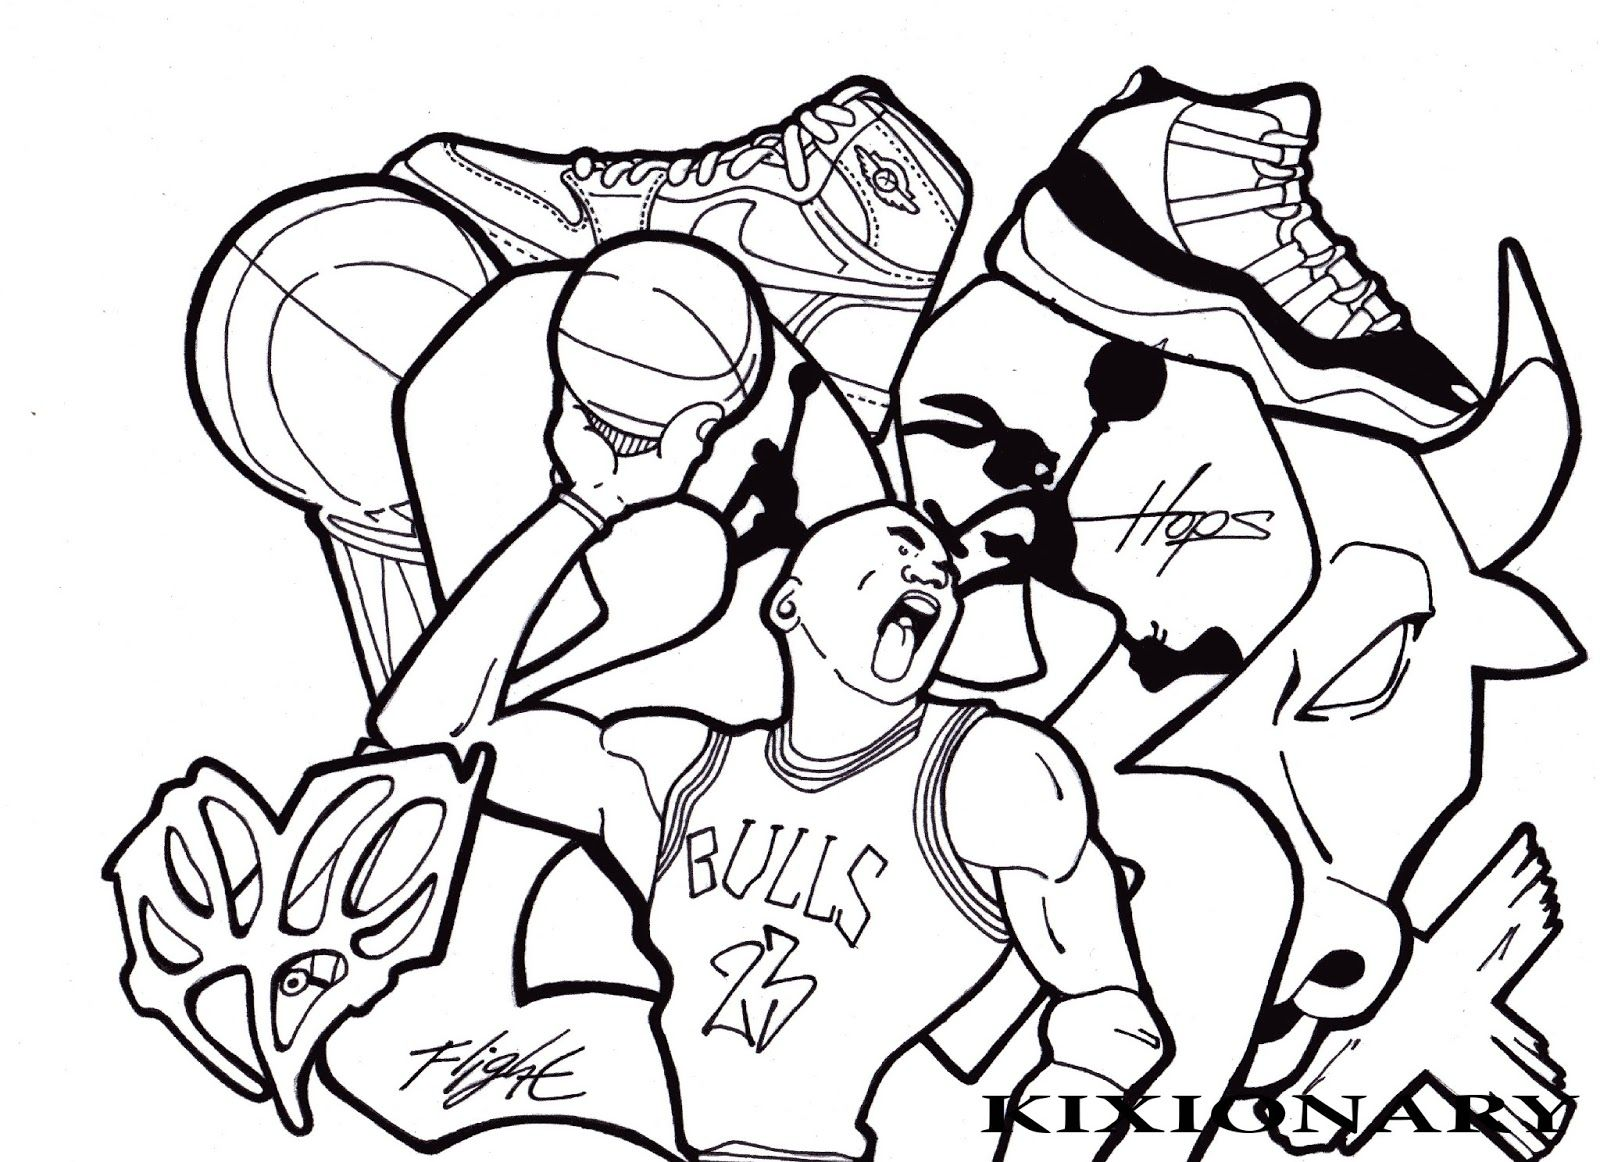 Laugh While Carrying The Ball Coloring Pages For Kids Coloring Pages For Kids